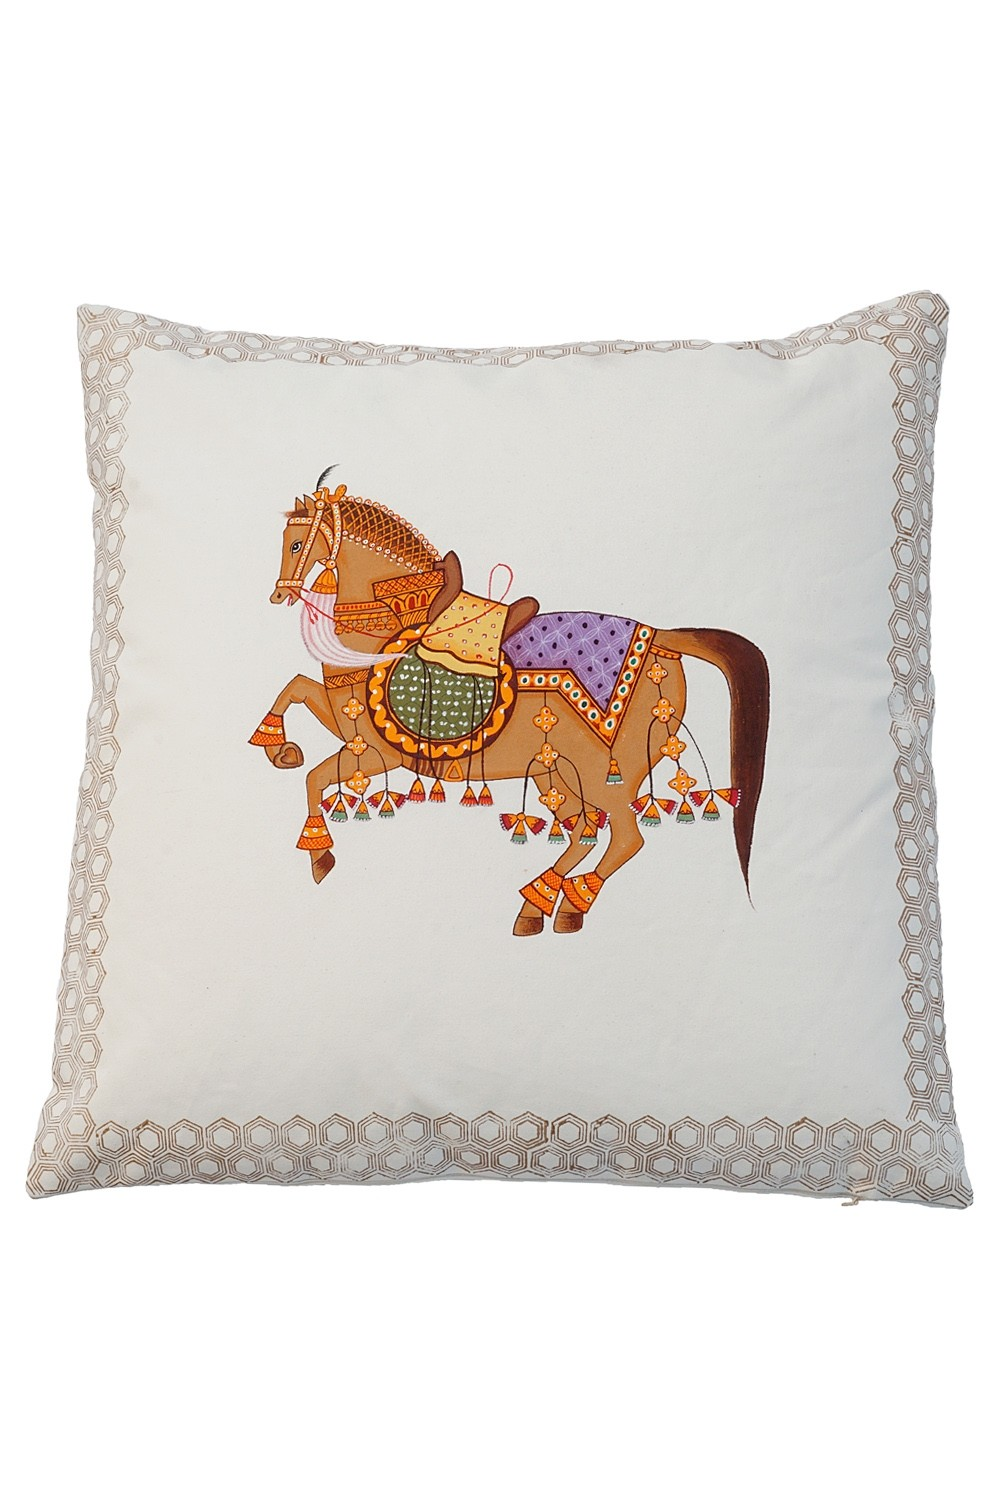 Beautiful Warrior Cotton Hand Printed Pillow Rugs And Beyond